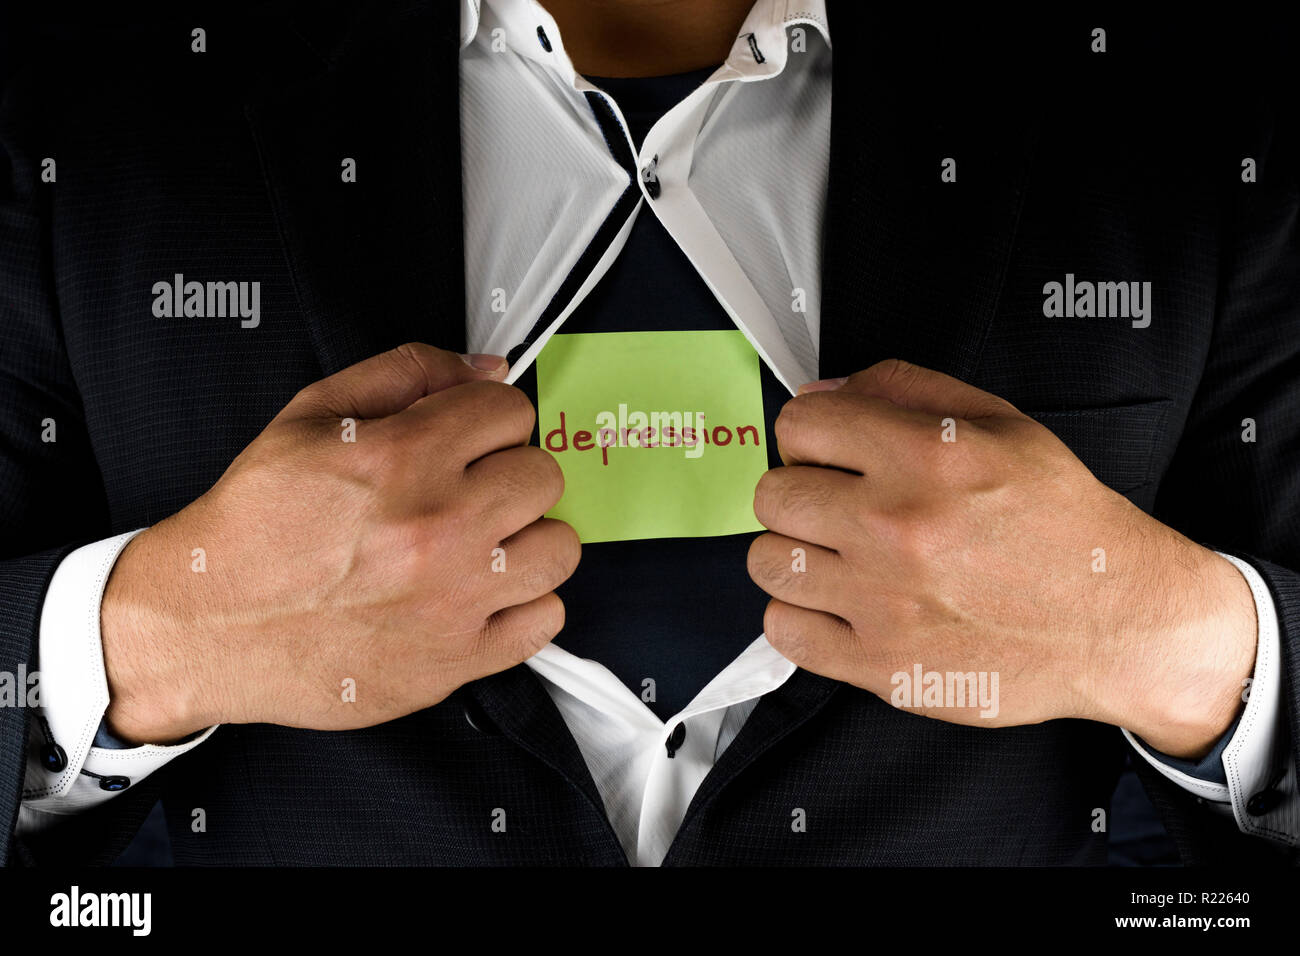 Hiding depression. A man in suit opening and unbuttoning his inner shirt to reveal his depression. Depression is written on a green sticky note. - Stock Image